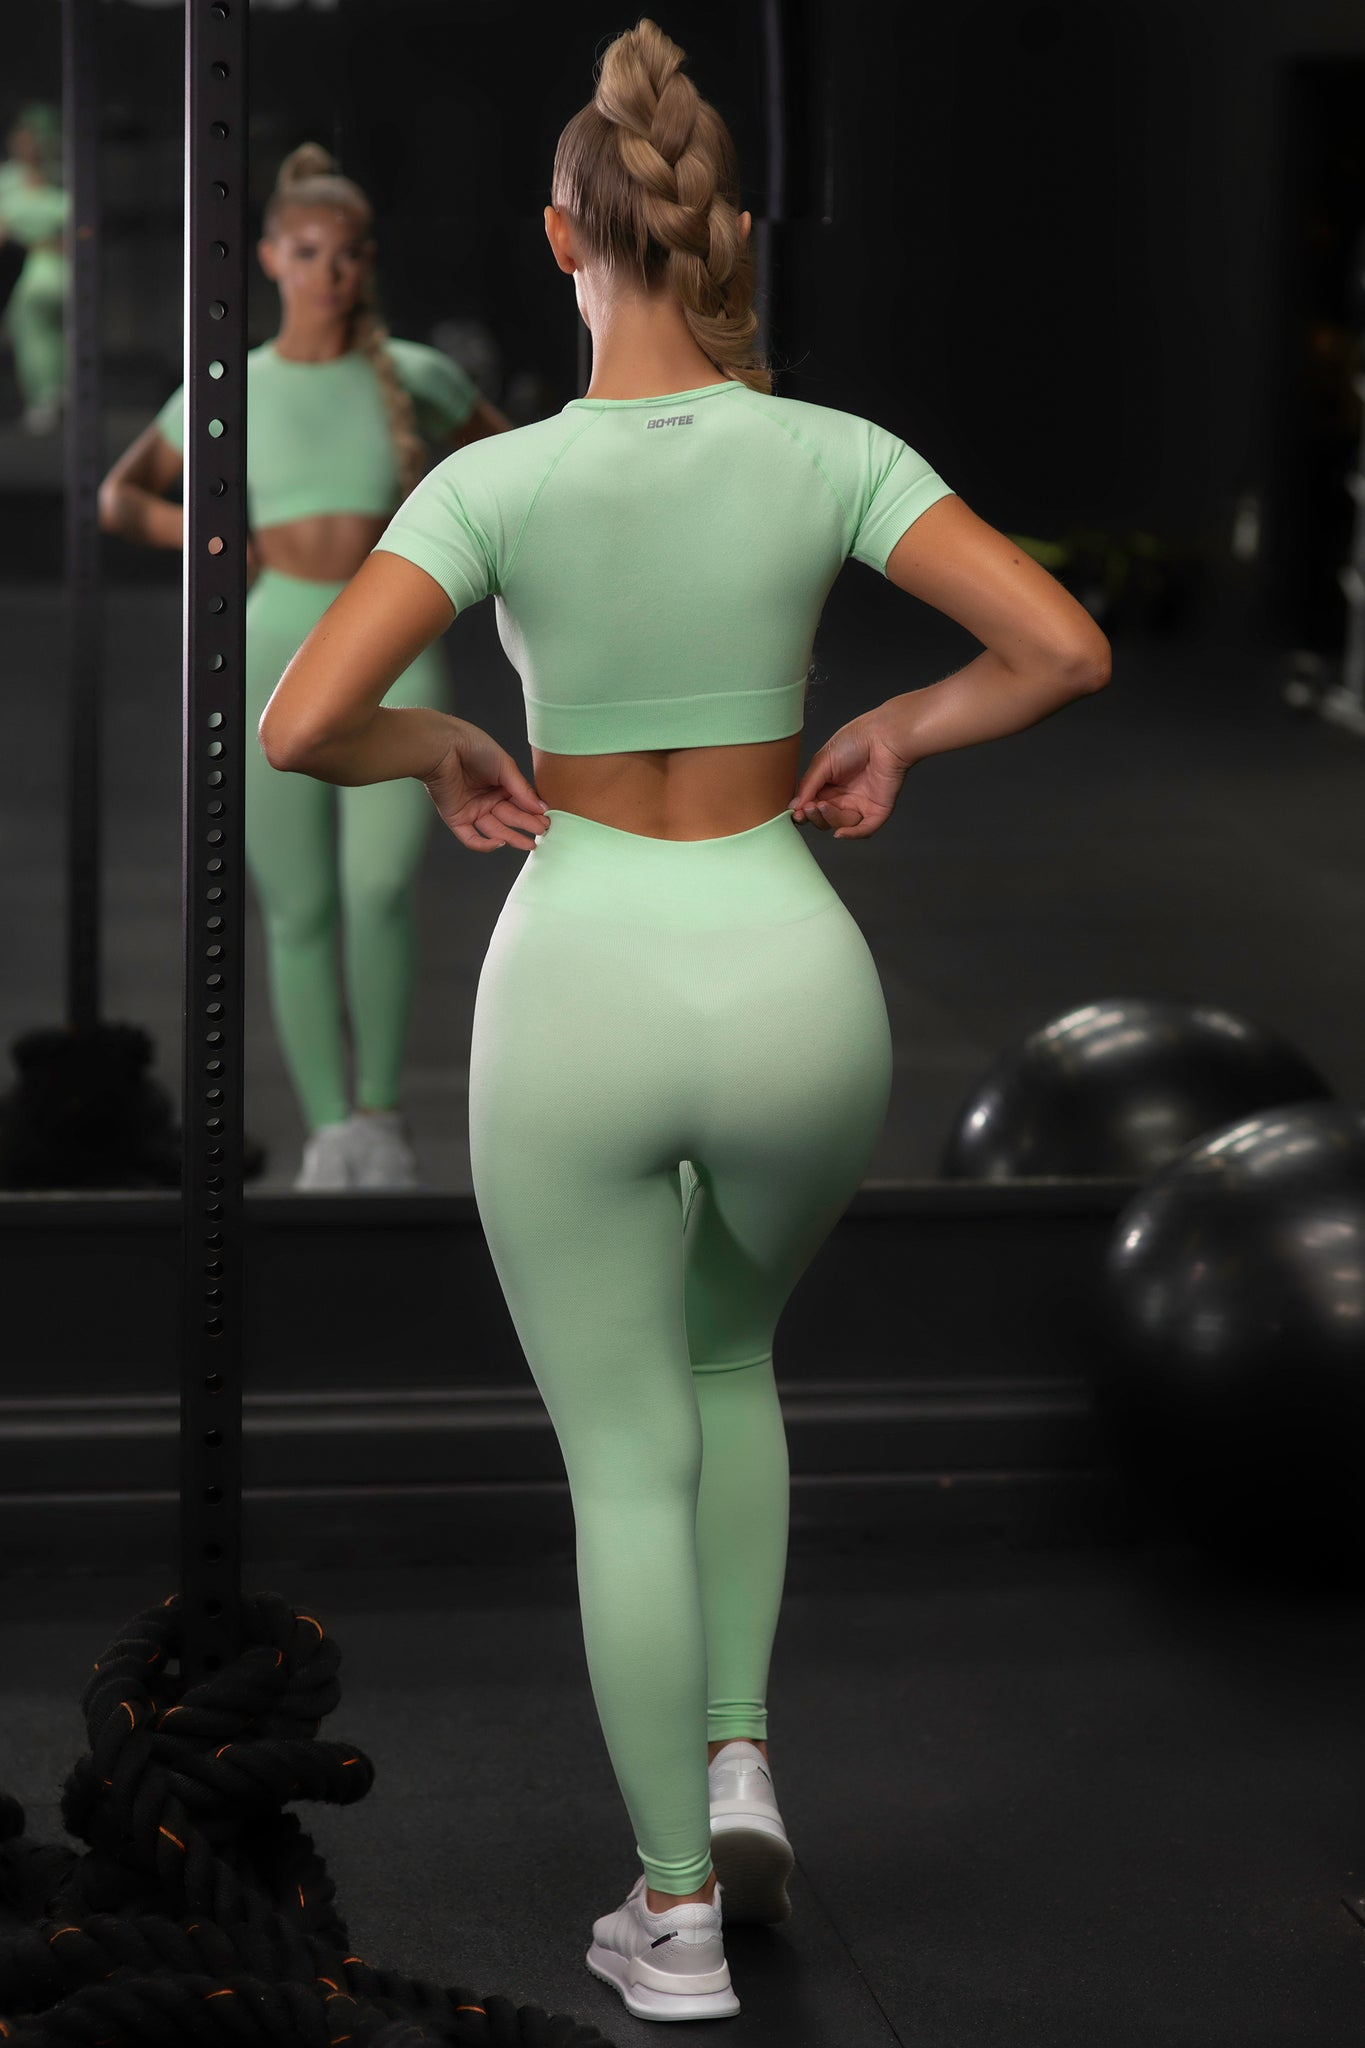 Plain bright green petite seamless high waisted full length gym leggings. Image 3 of 6.